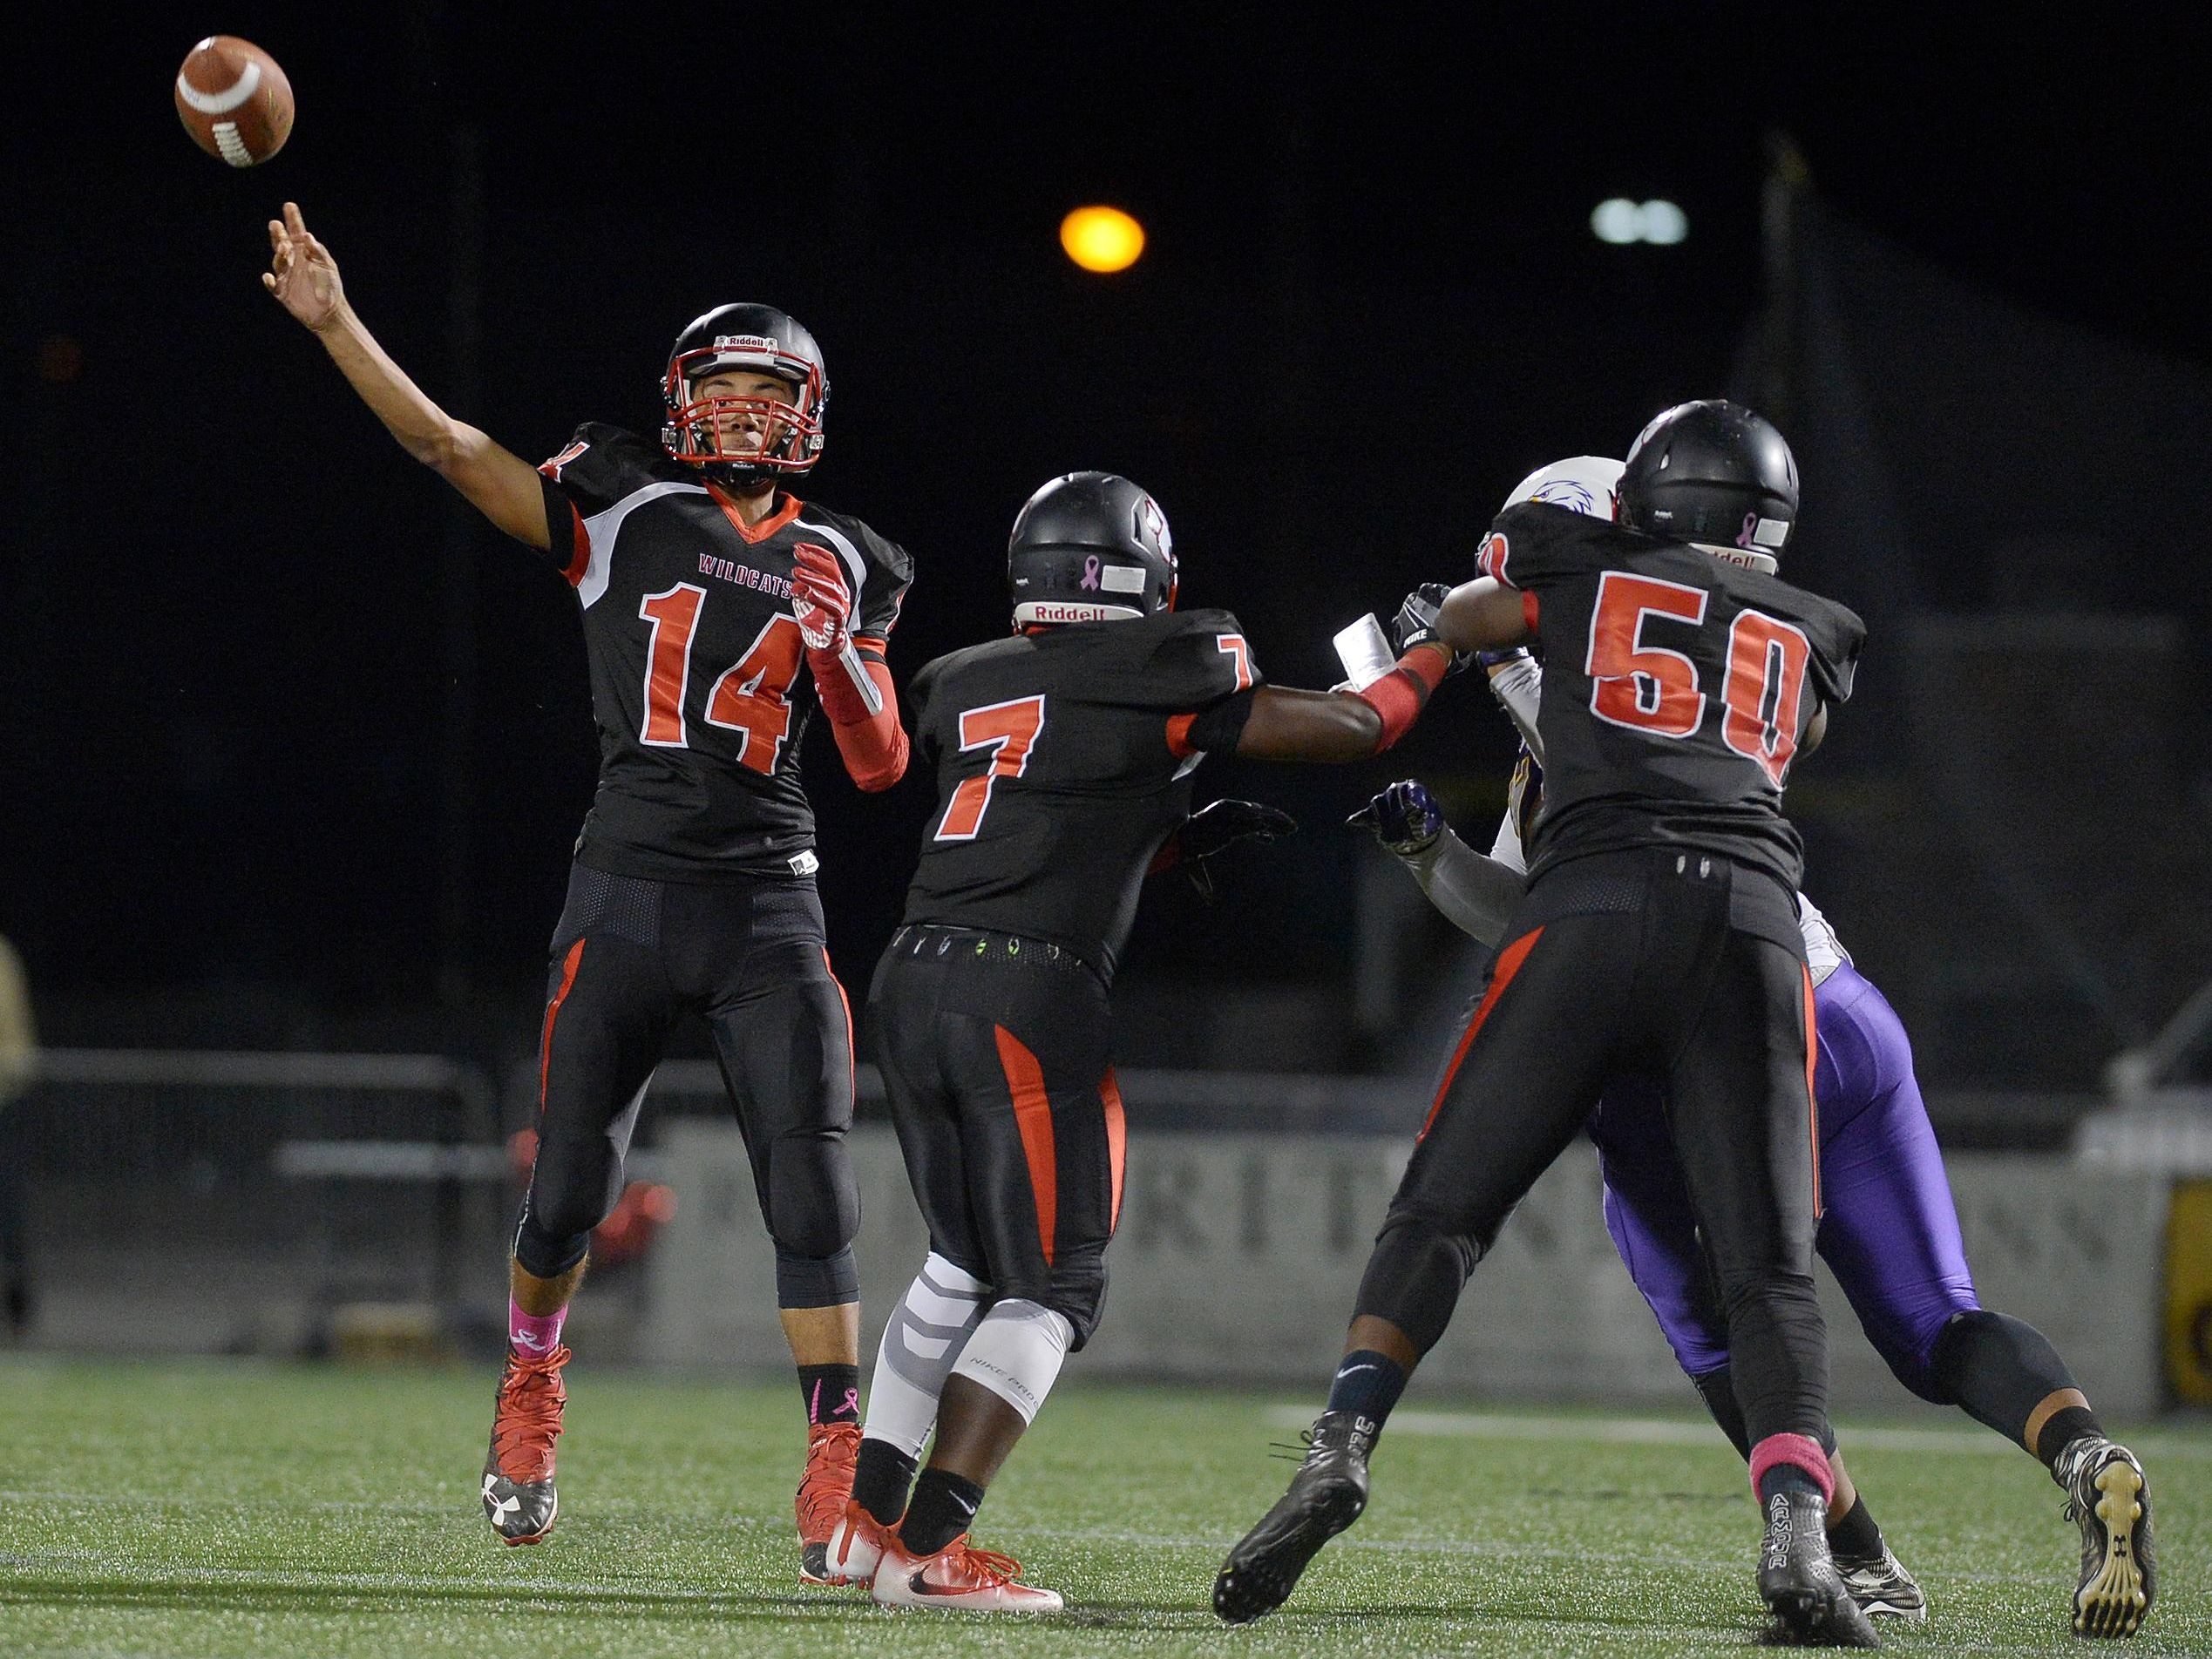 Wilson quarterback James Cotton throws a long pass from the pocket.